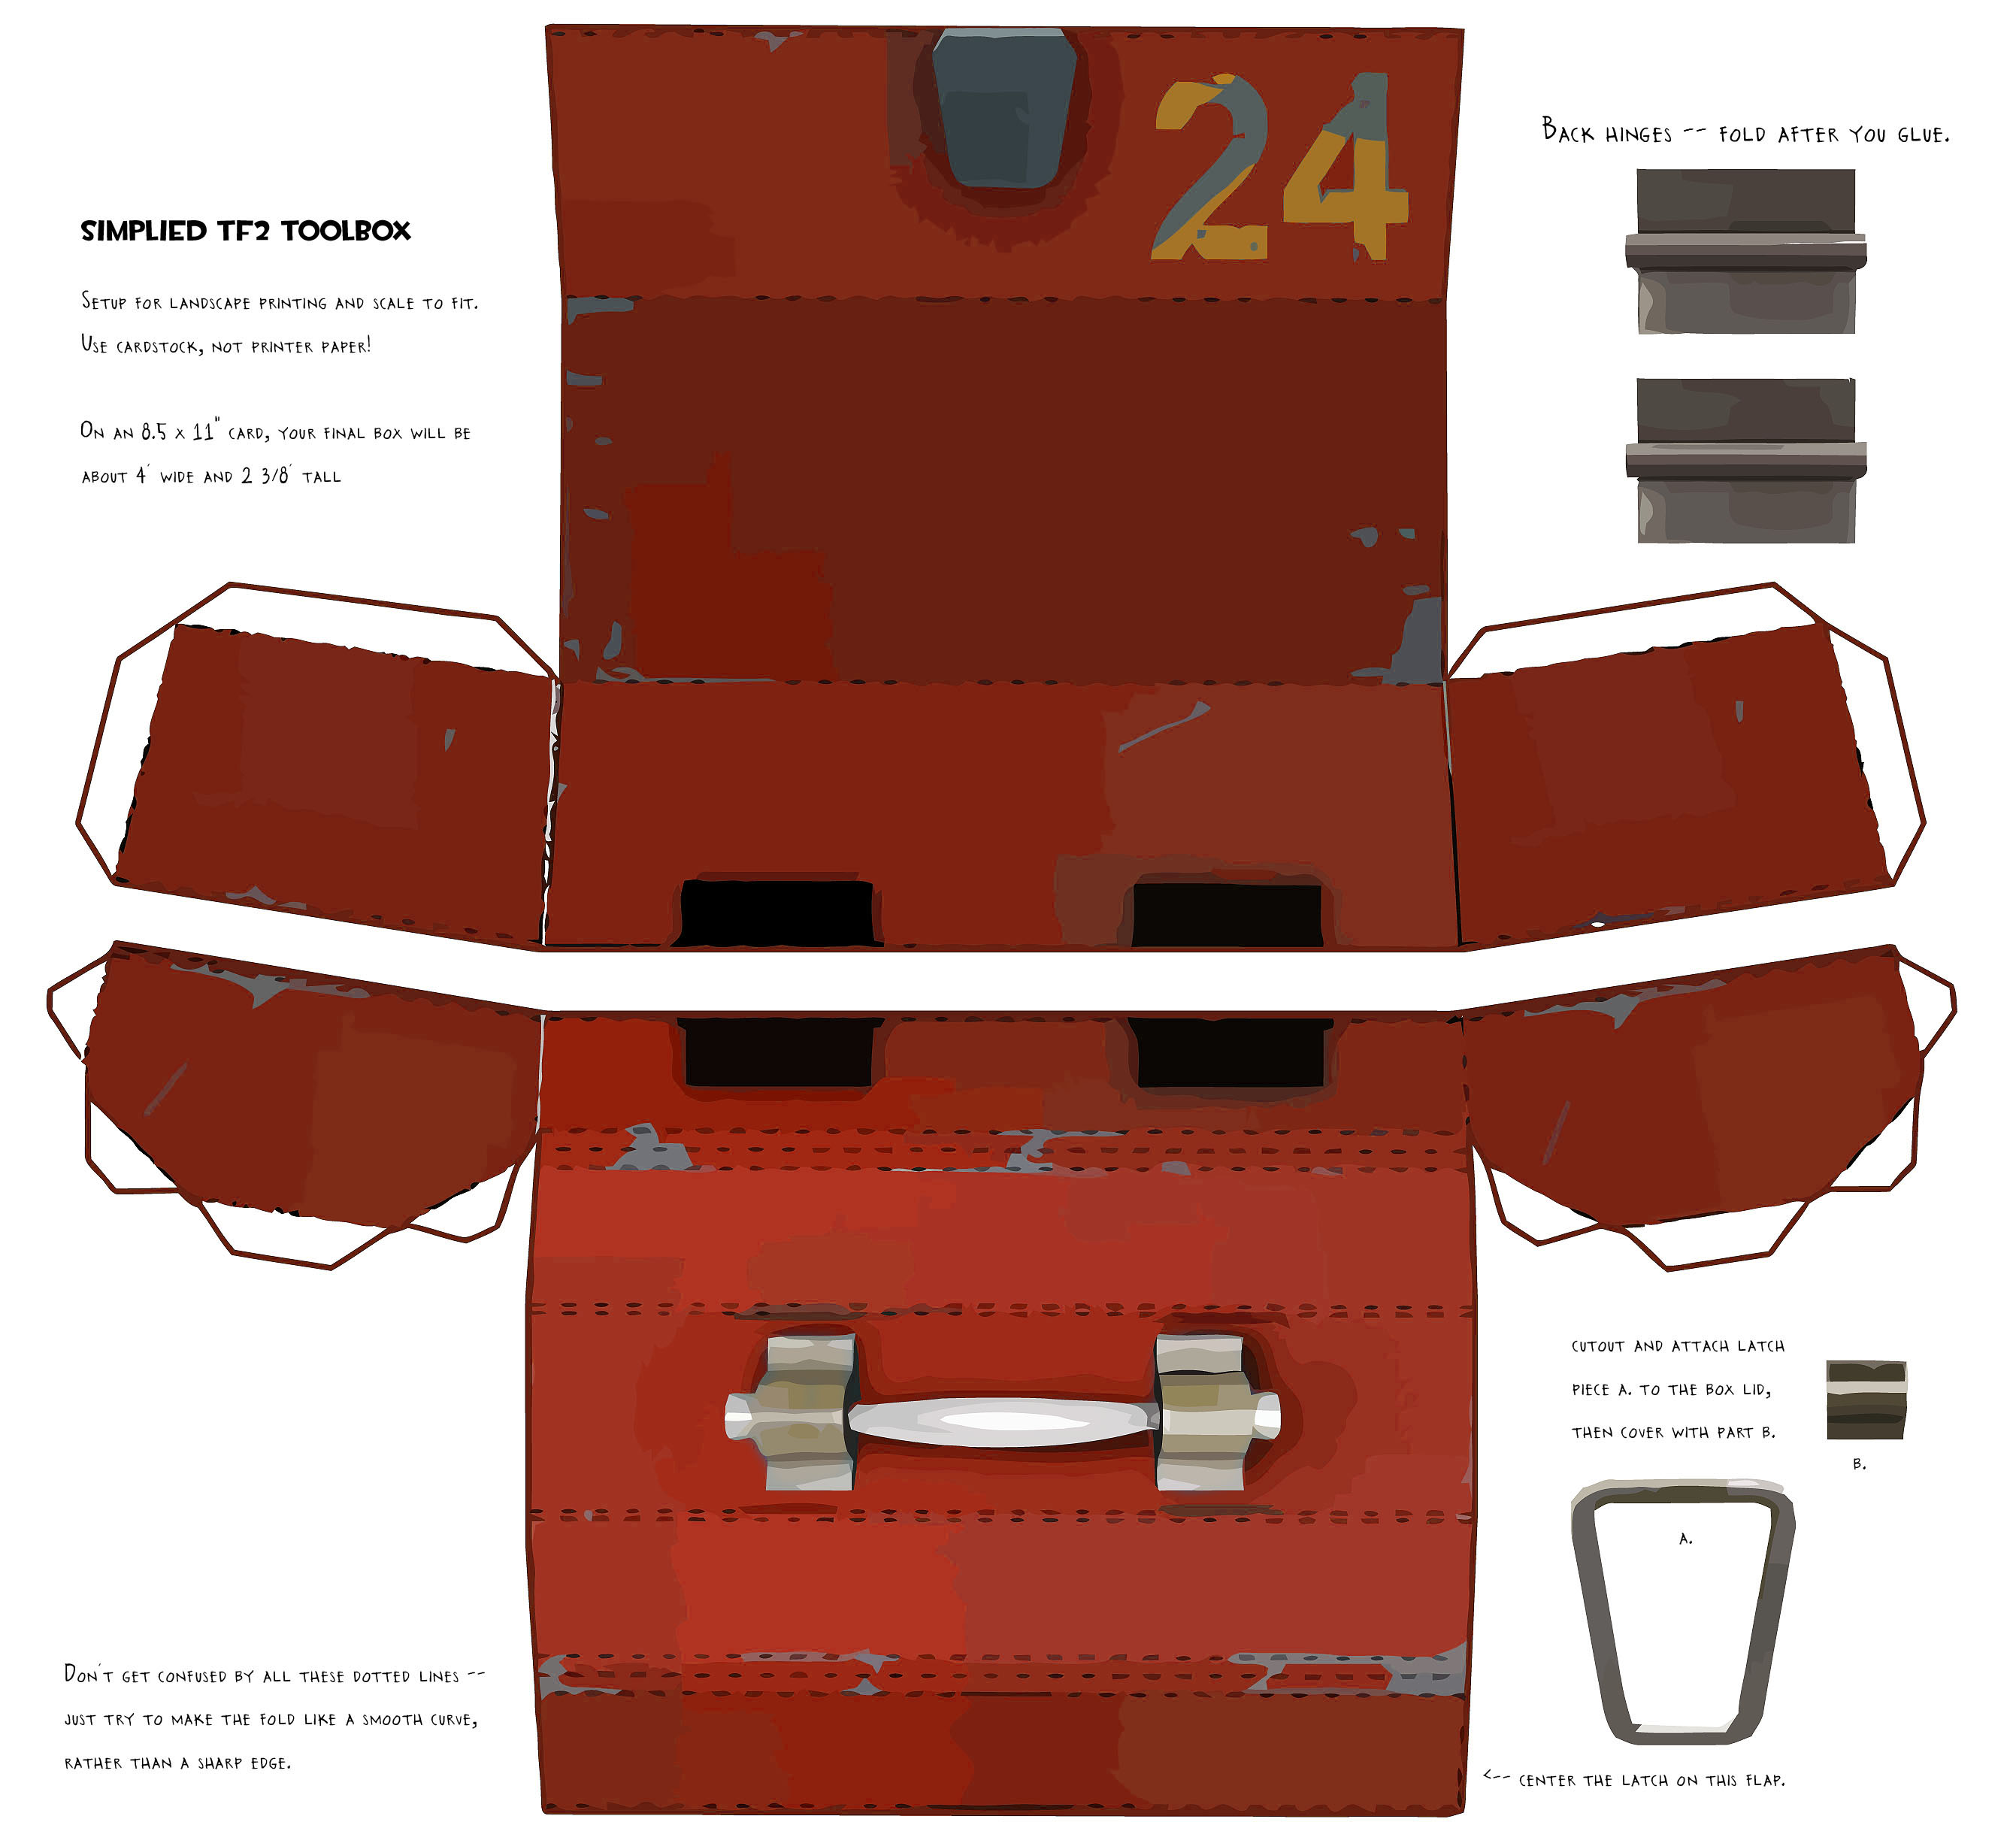 tf2 papercraft red toolbox by propmedic on deviantart. Black Bedroom Furniture Sets. Home Design Ideas